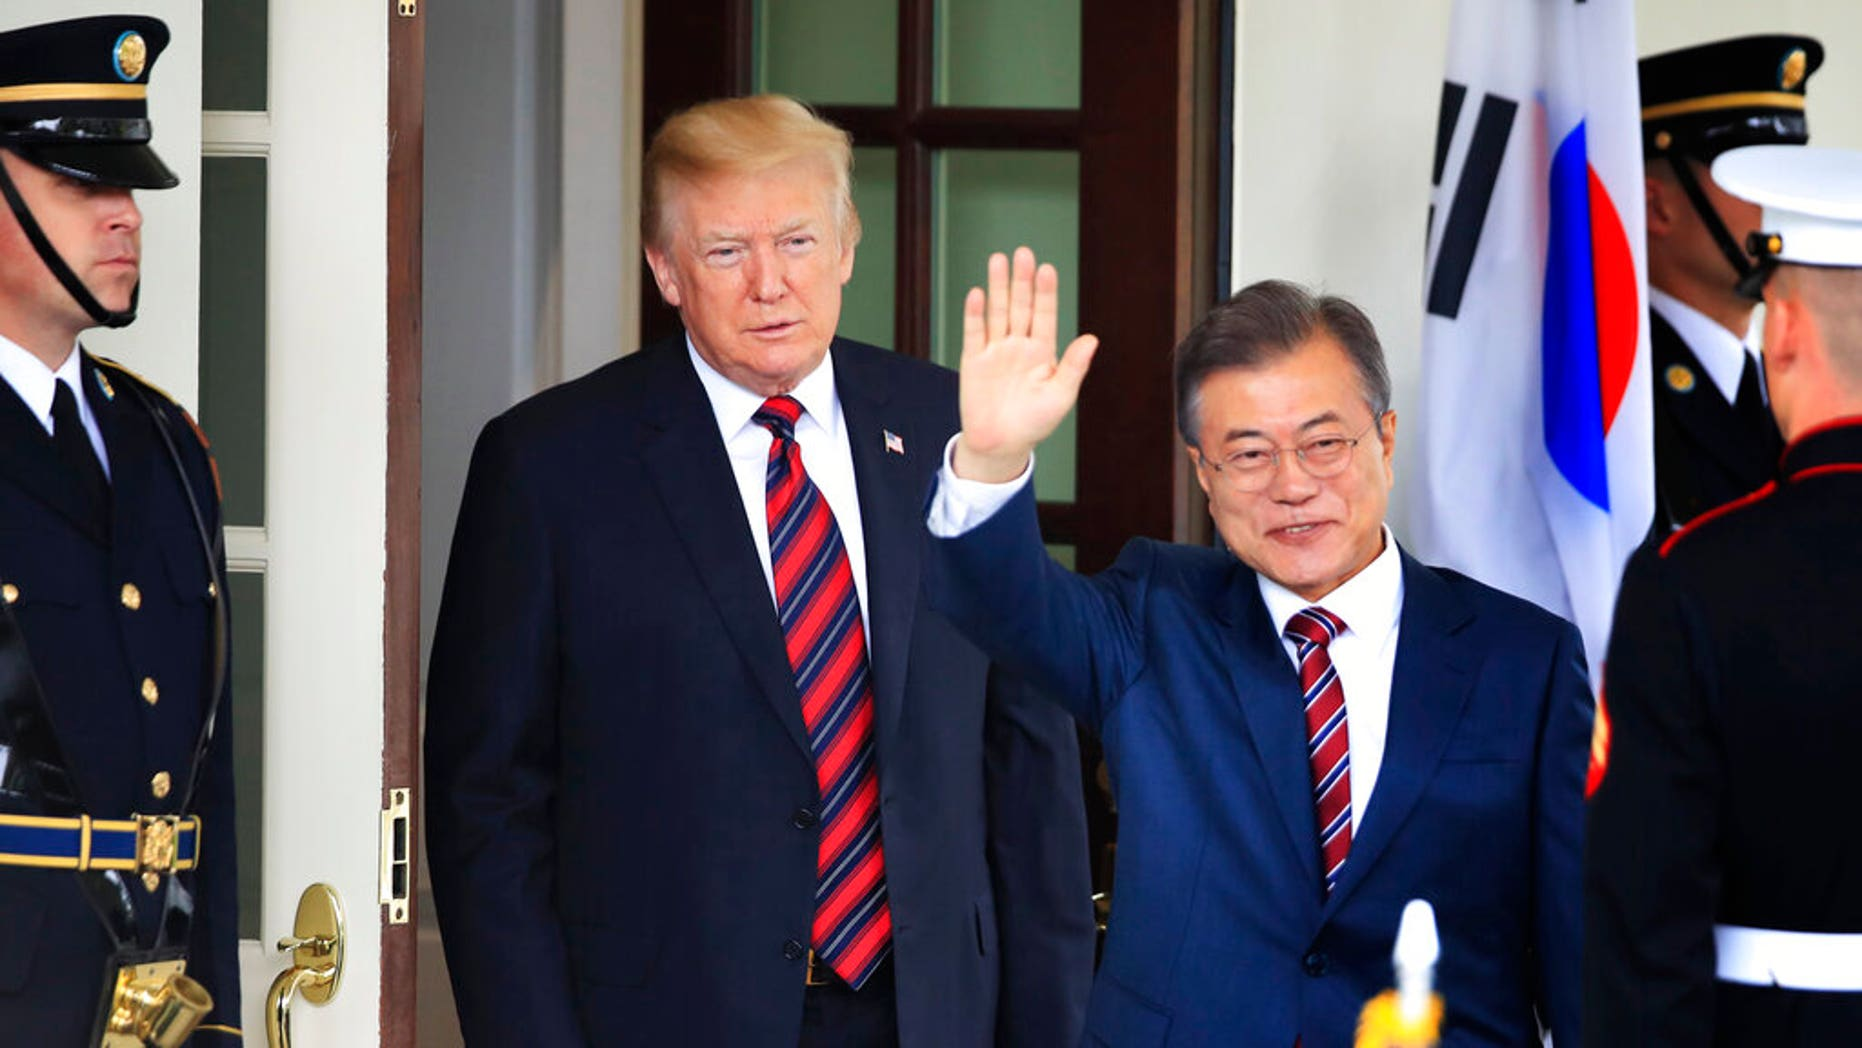 FILE South Korean President Moon Jae-in waves as he is welcomed by U.S. President Donald Trump to the White House in Washington